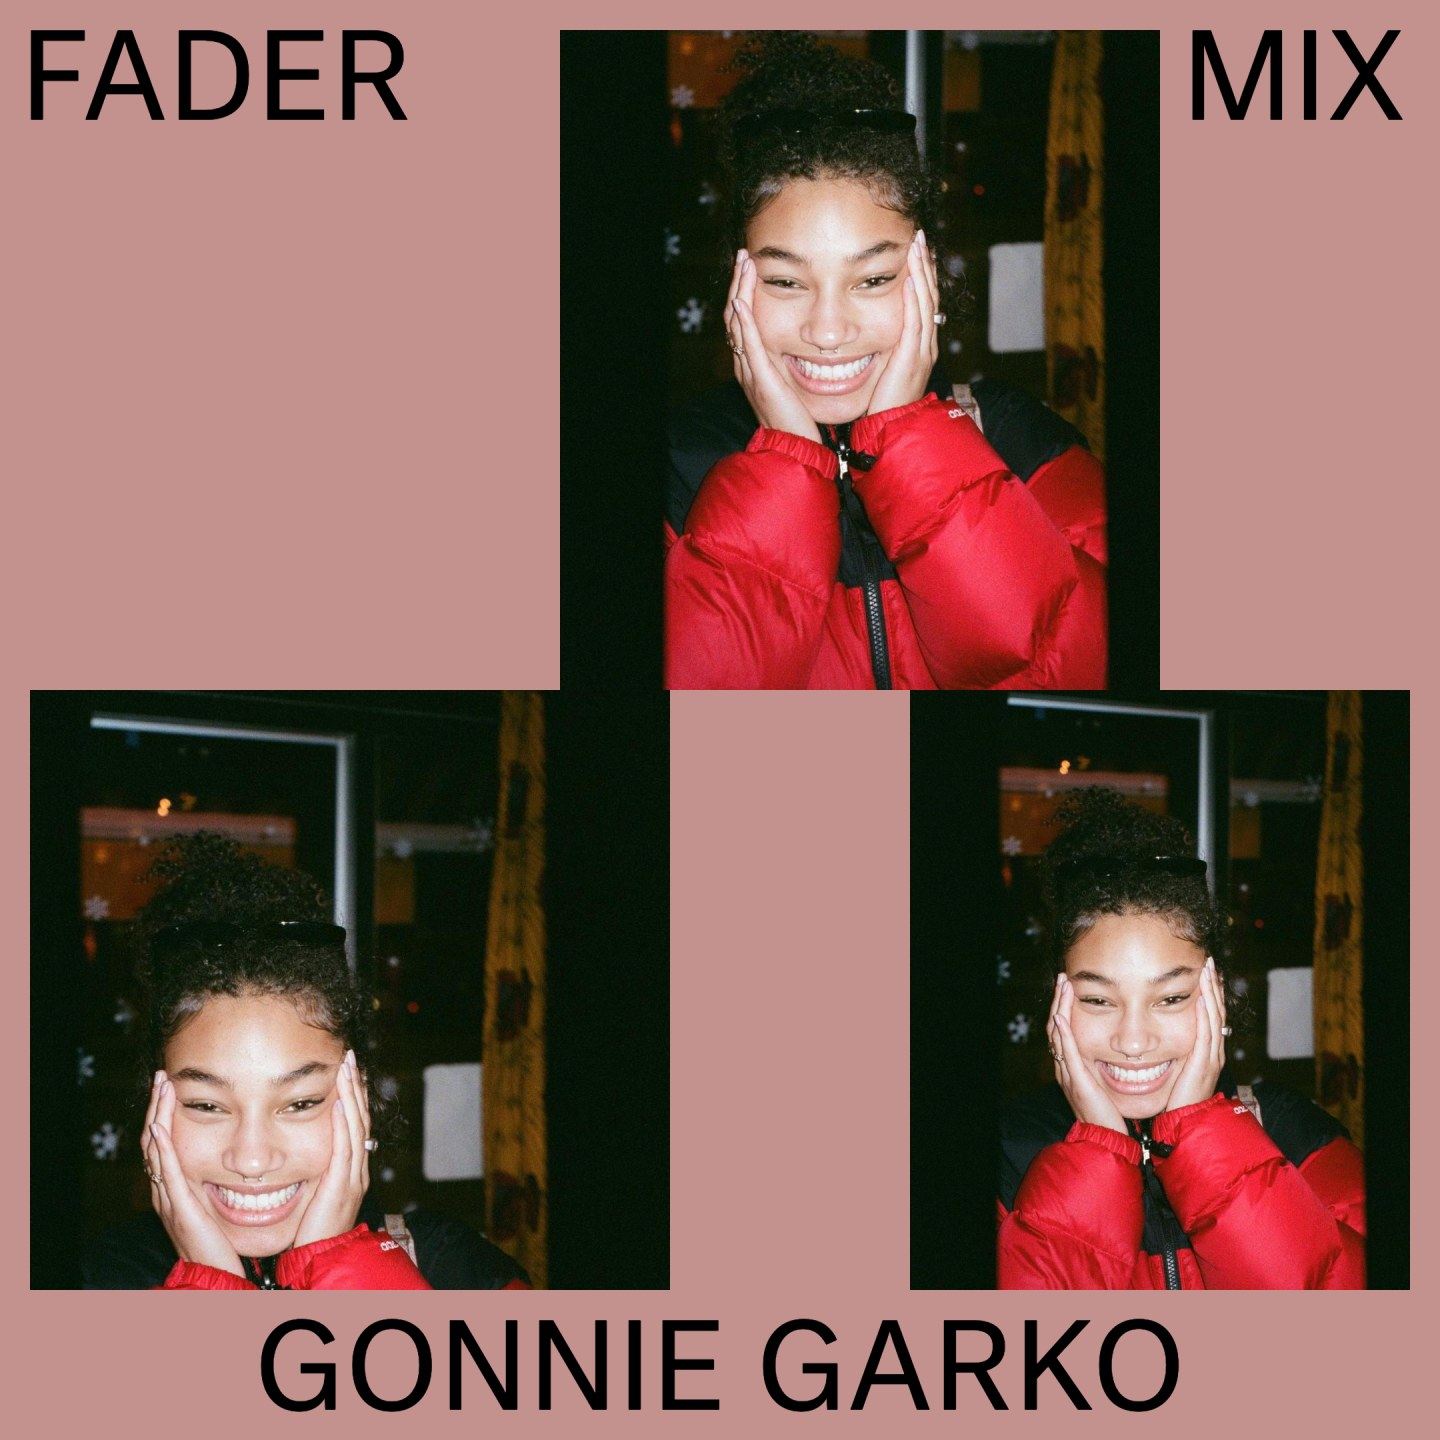 Listen to a new FADER Mix by Gonnie Garko